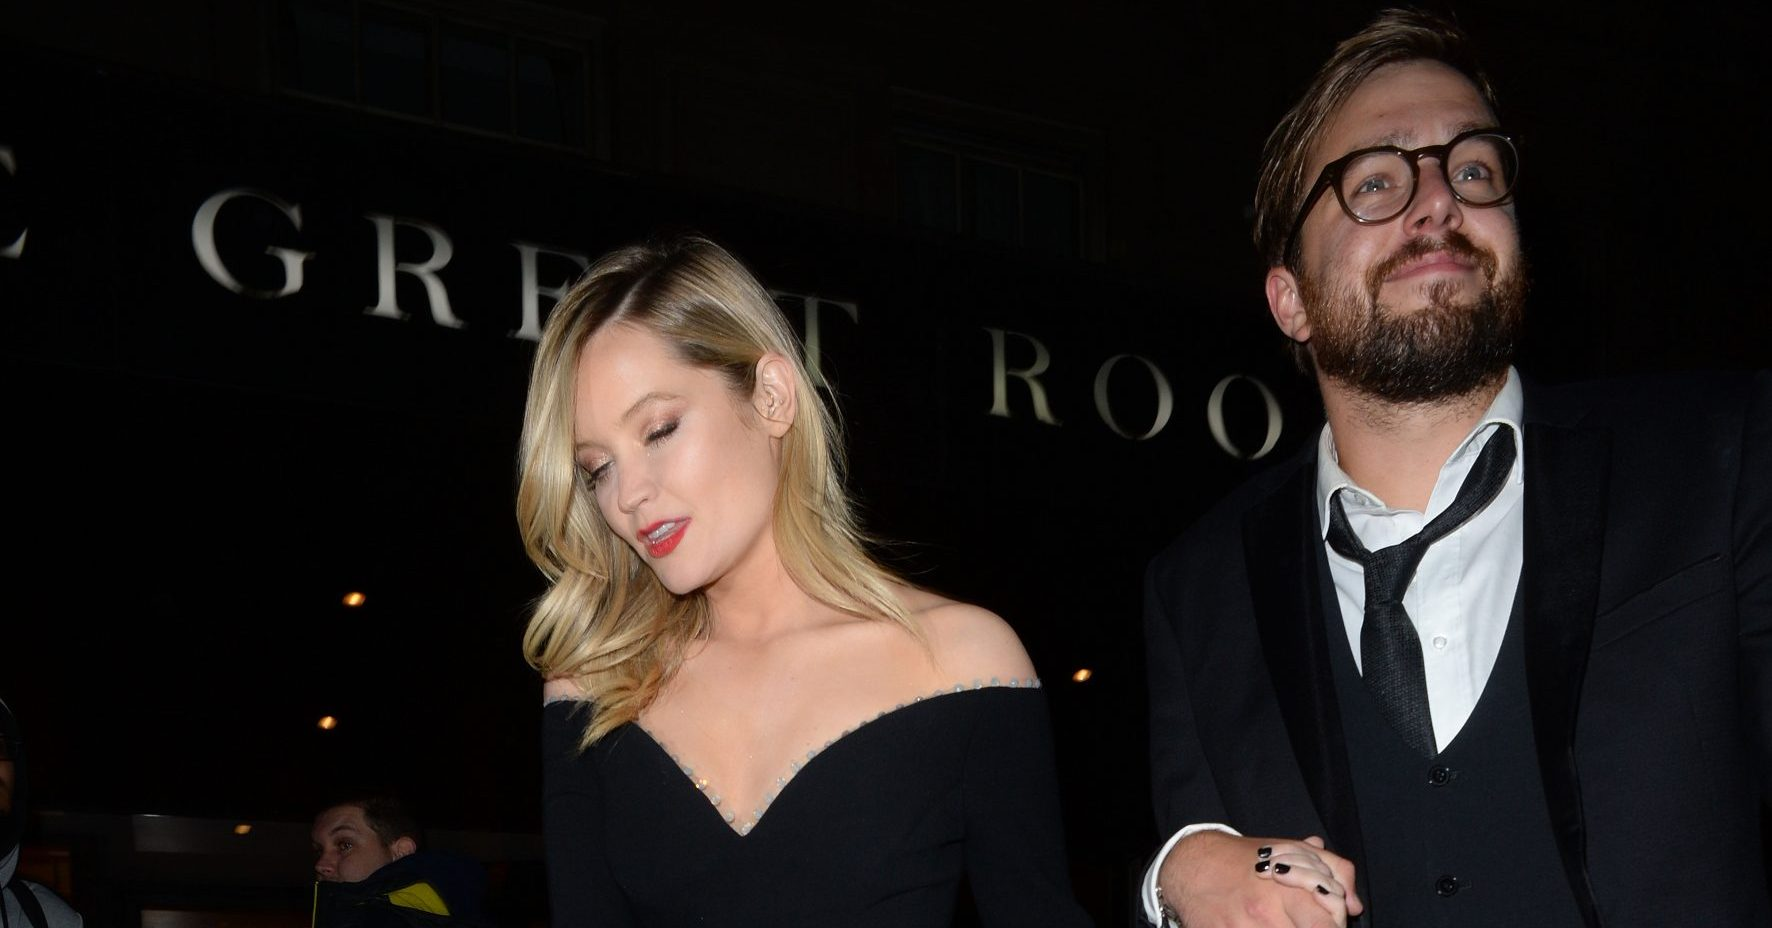 Love Island host Laura Whitmore sparks rumours she is engaged to beau Iain Stirling